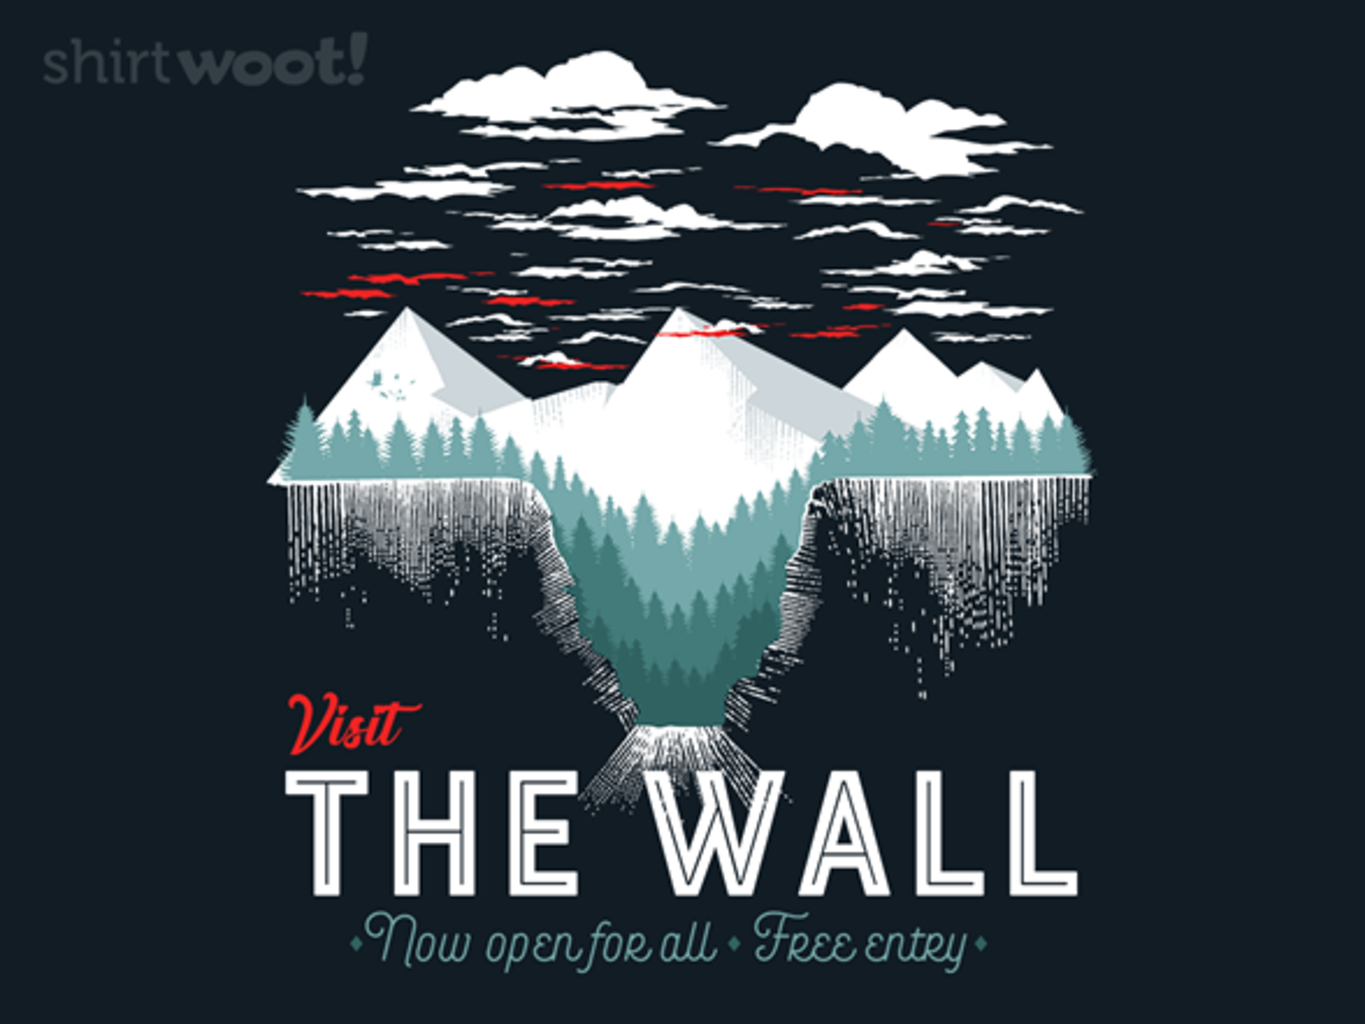 Woot!: Visit The Wall